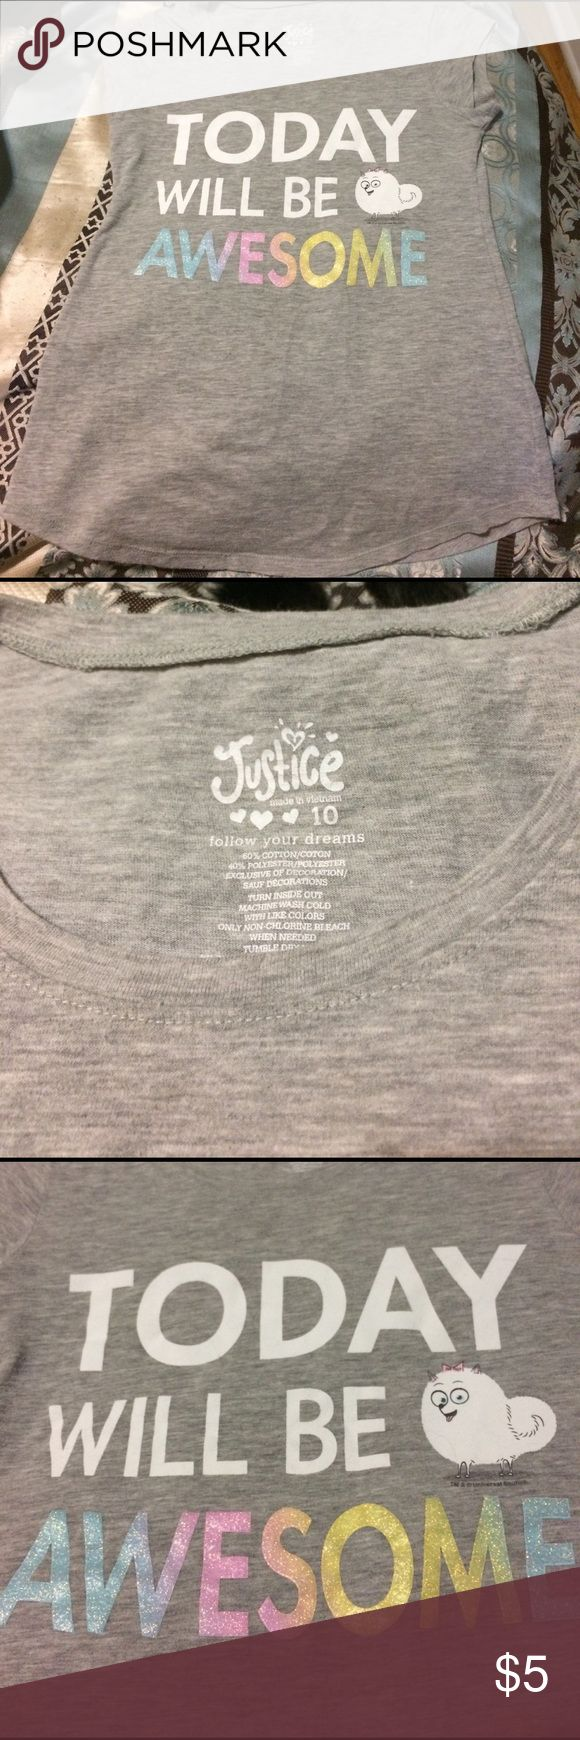 Justice shirt Girls Justice shirt with Secret Life of Pets picture.  Good used condition! No tears or stains. Shirts & Tops